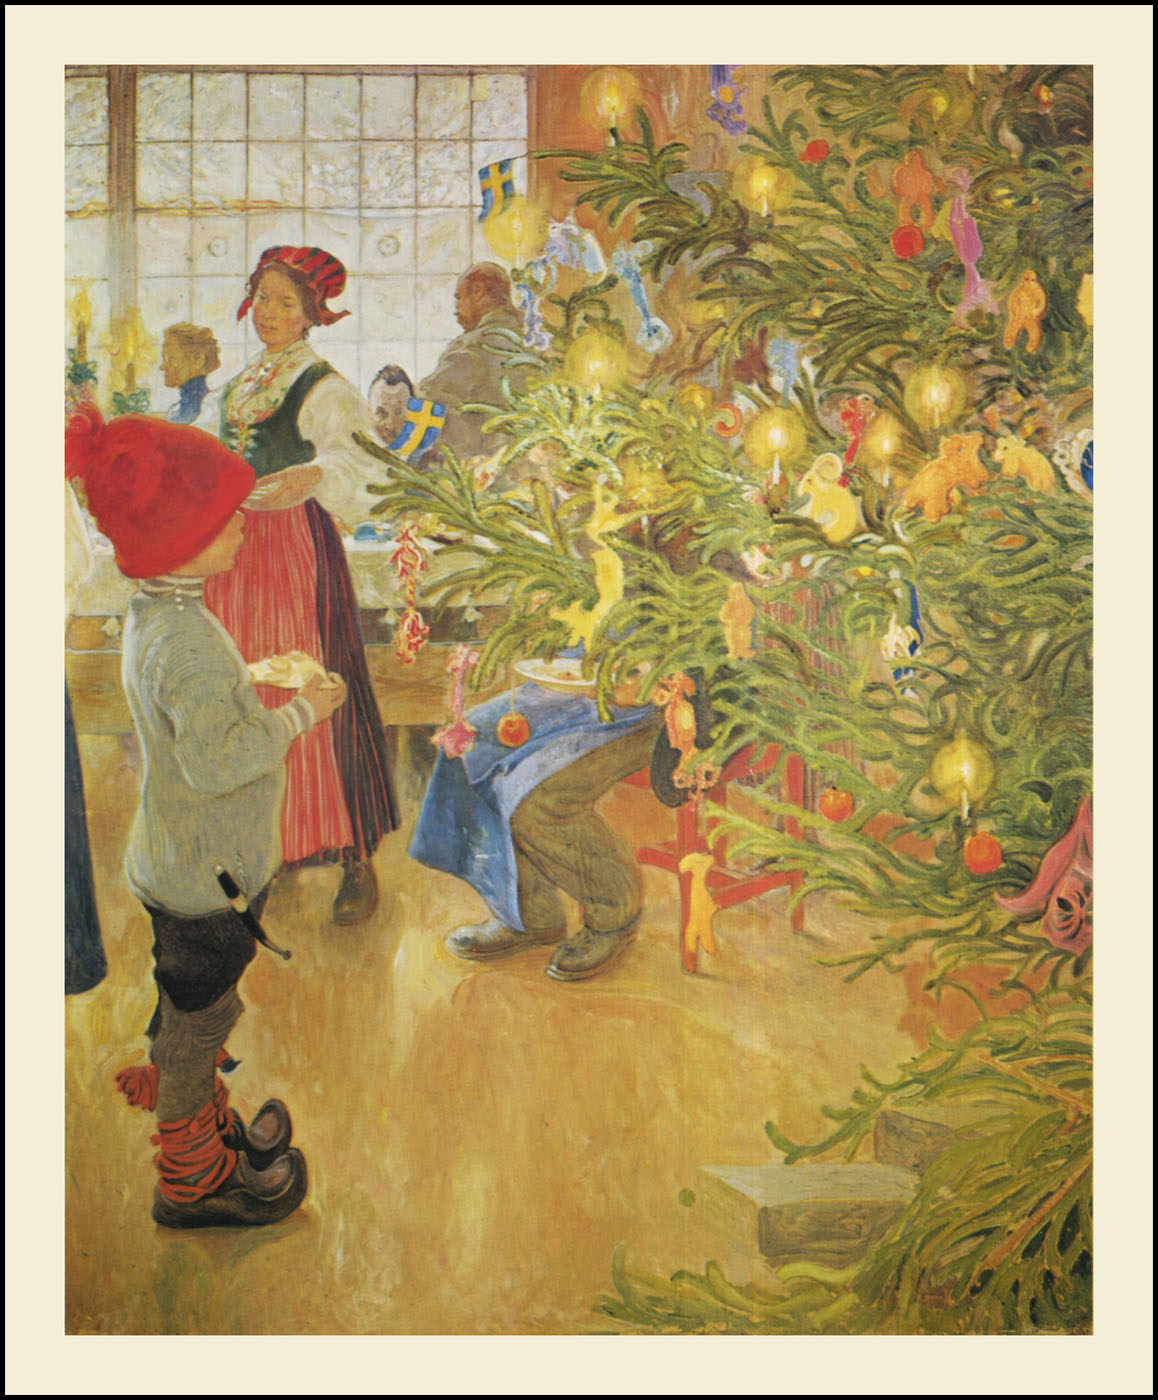 The Pictorial Arts: Swedish Yuletide